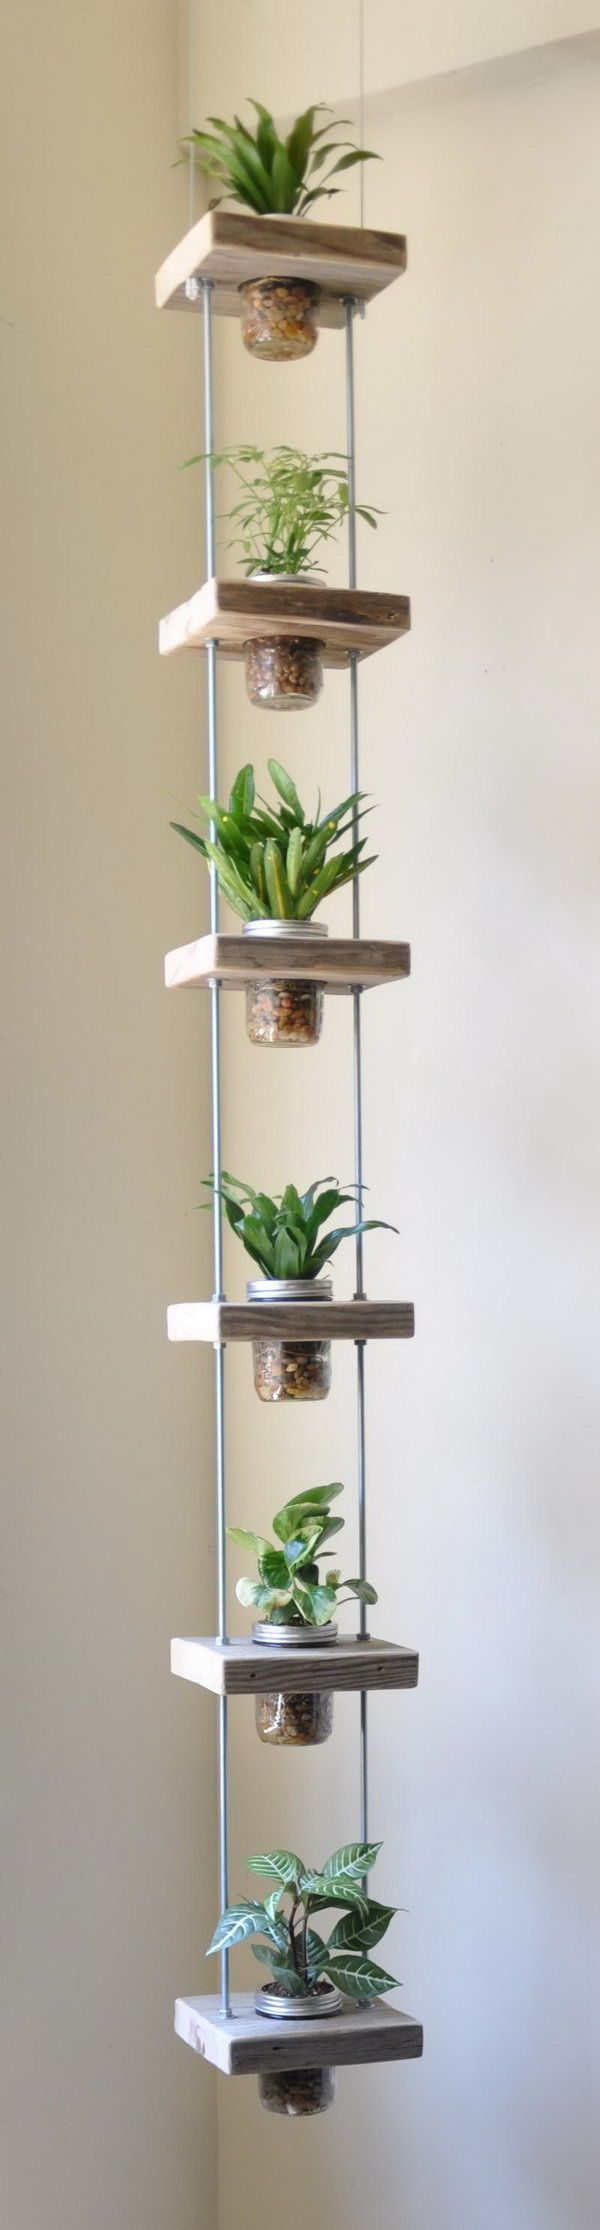 vertical herb garden from salvaged wood and mason jars, Cool DIY Indoor Herb Garden Ideas,